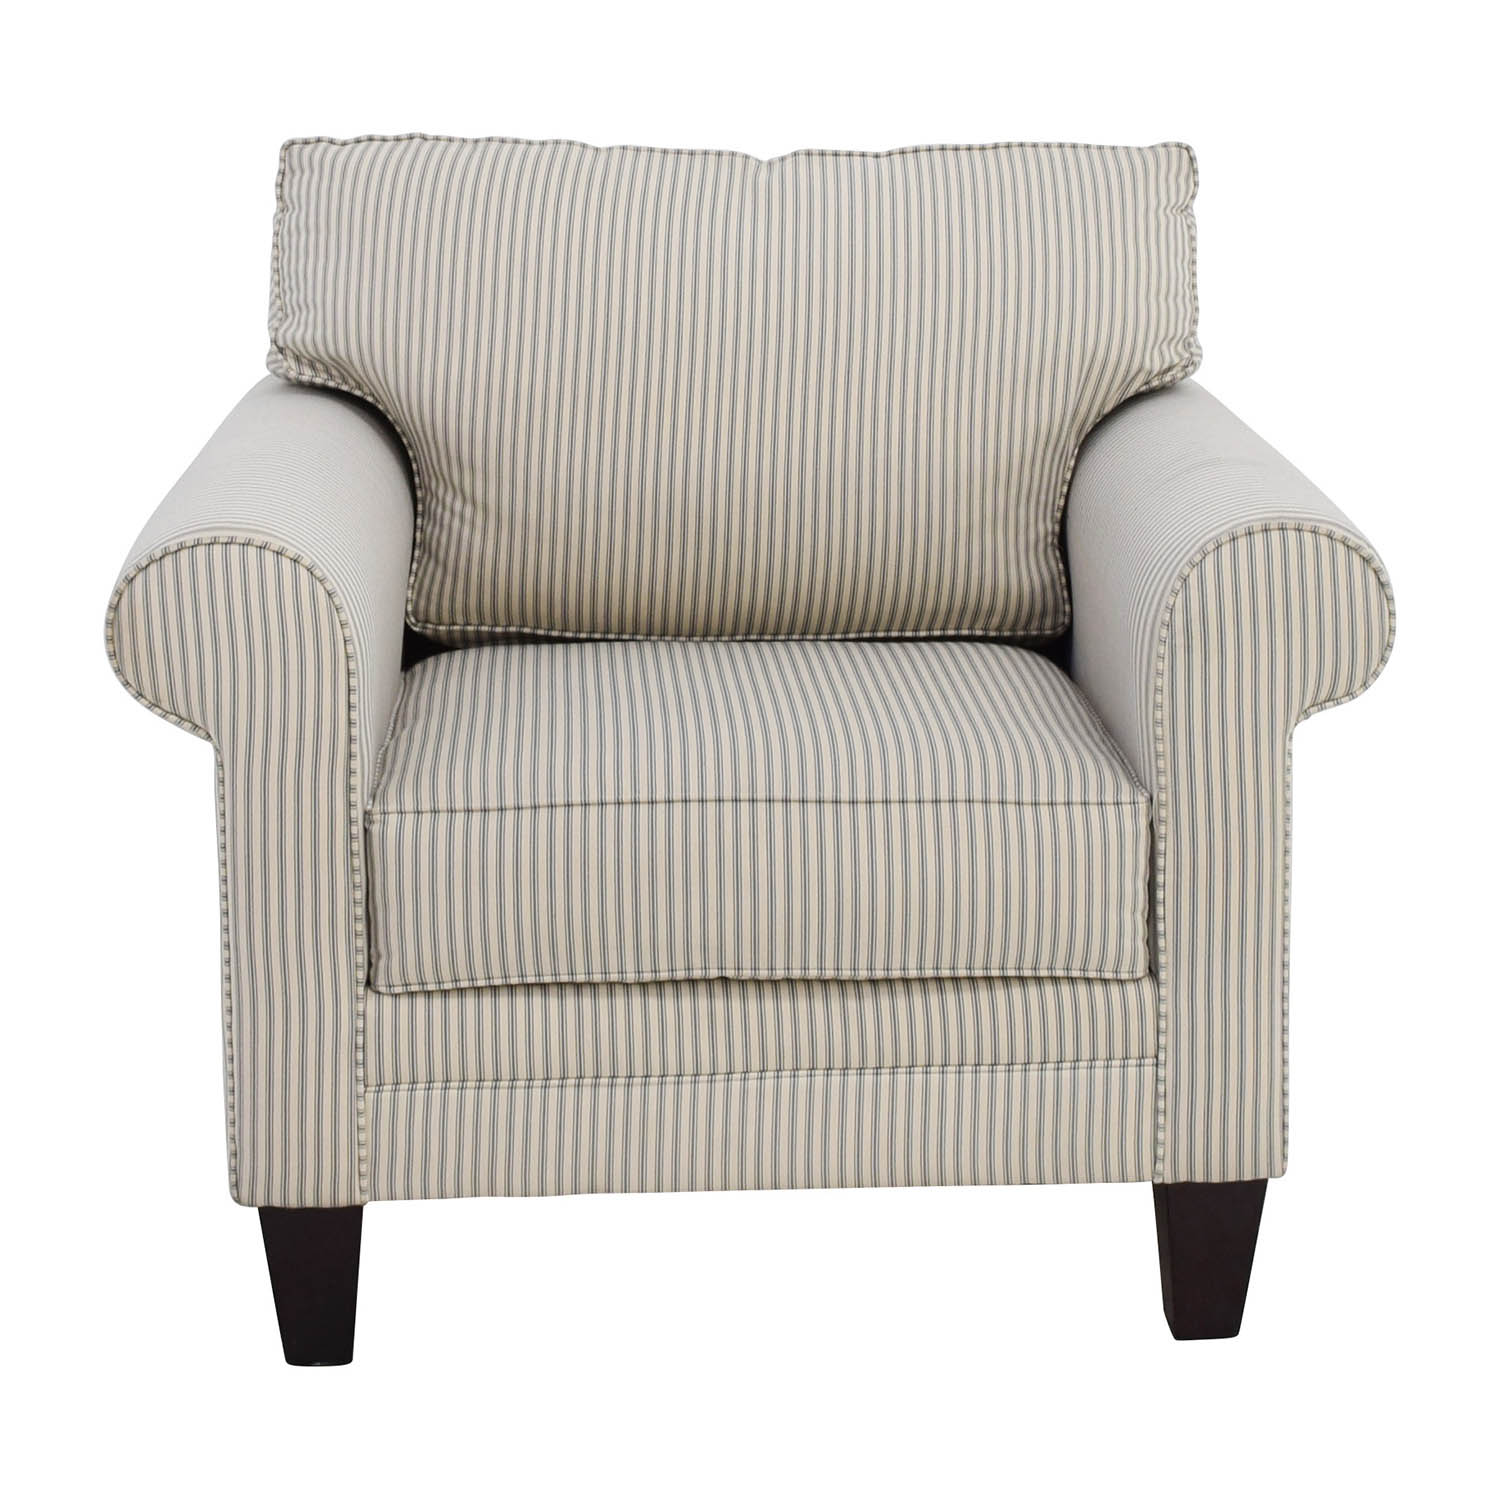 Buy Raymour And Flanigan Raymour And Flanigan Striped Cream Chair Online